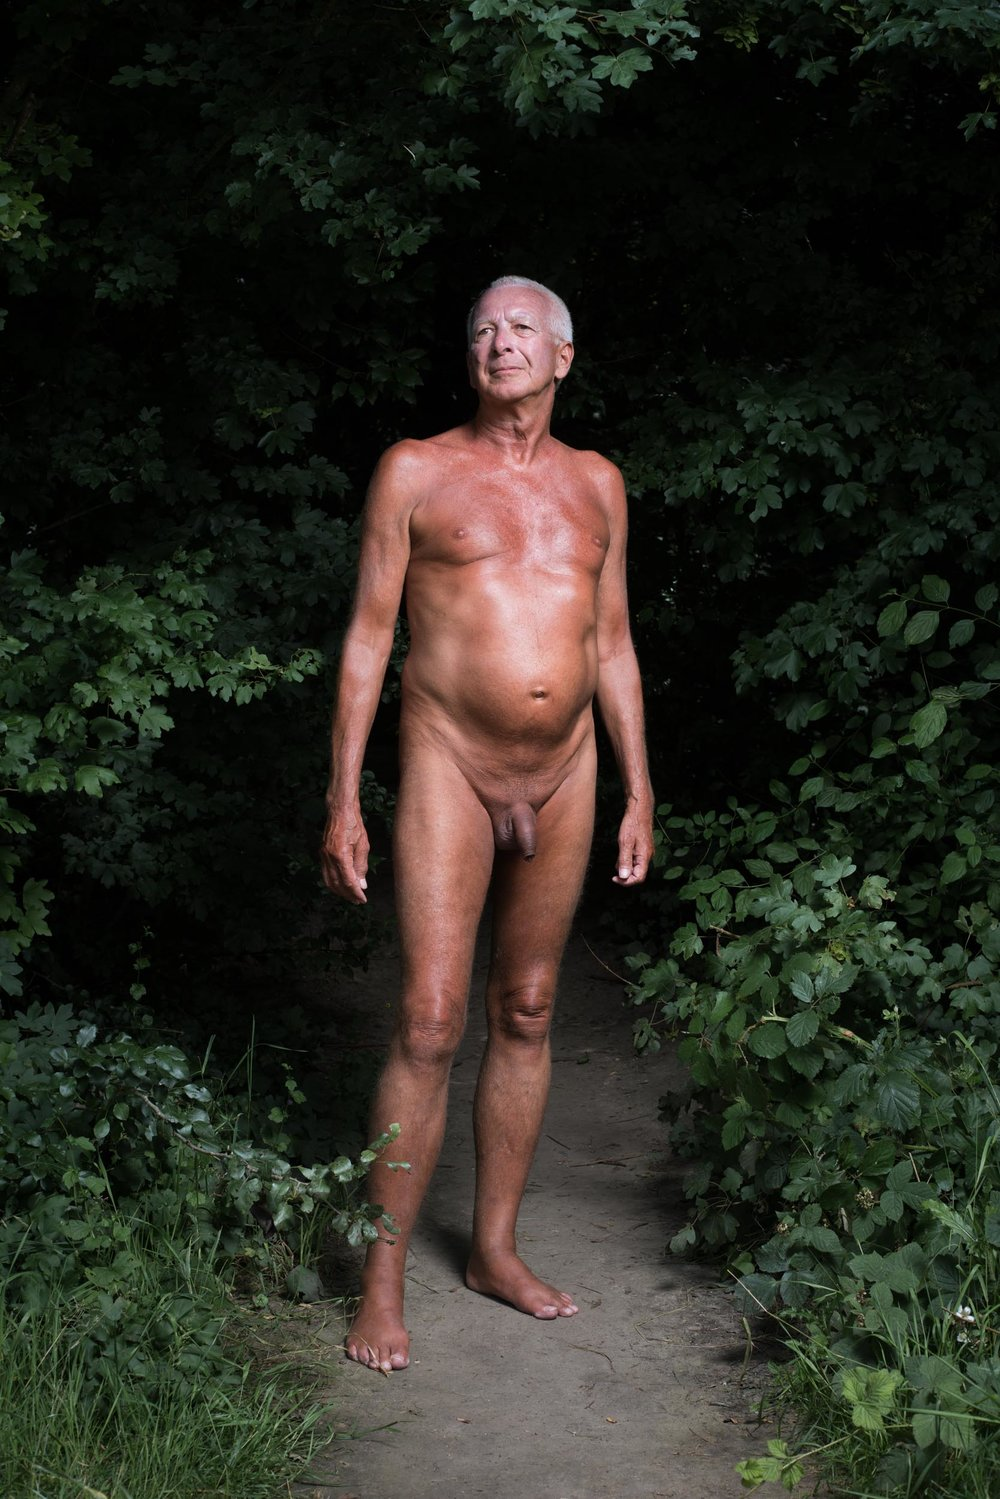 In late 2017 a clearing in the Bois de Vincennes in western Paris was reserved for nudism.  To mark the beginning of Summer 2018, there was a picnic held there in June; I packed my camera, a flash kit and a lot of sunblock and set off to shoot this series.